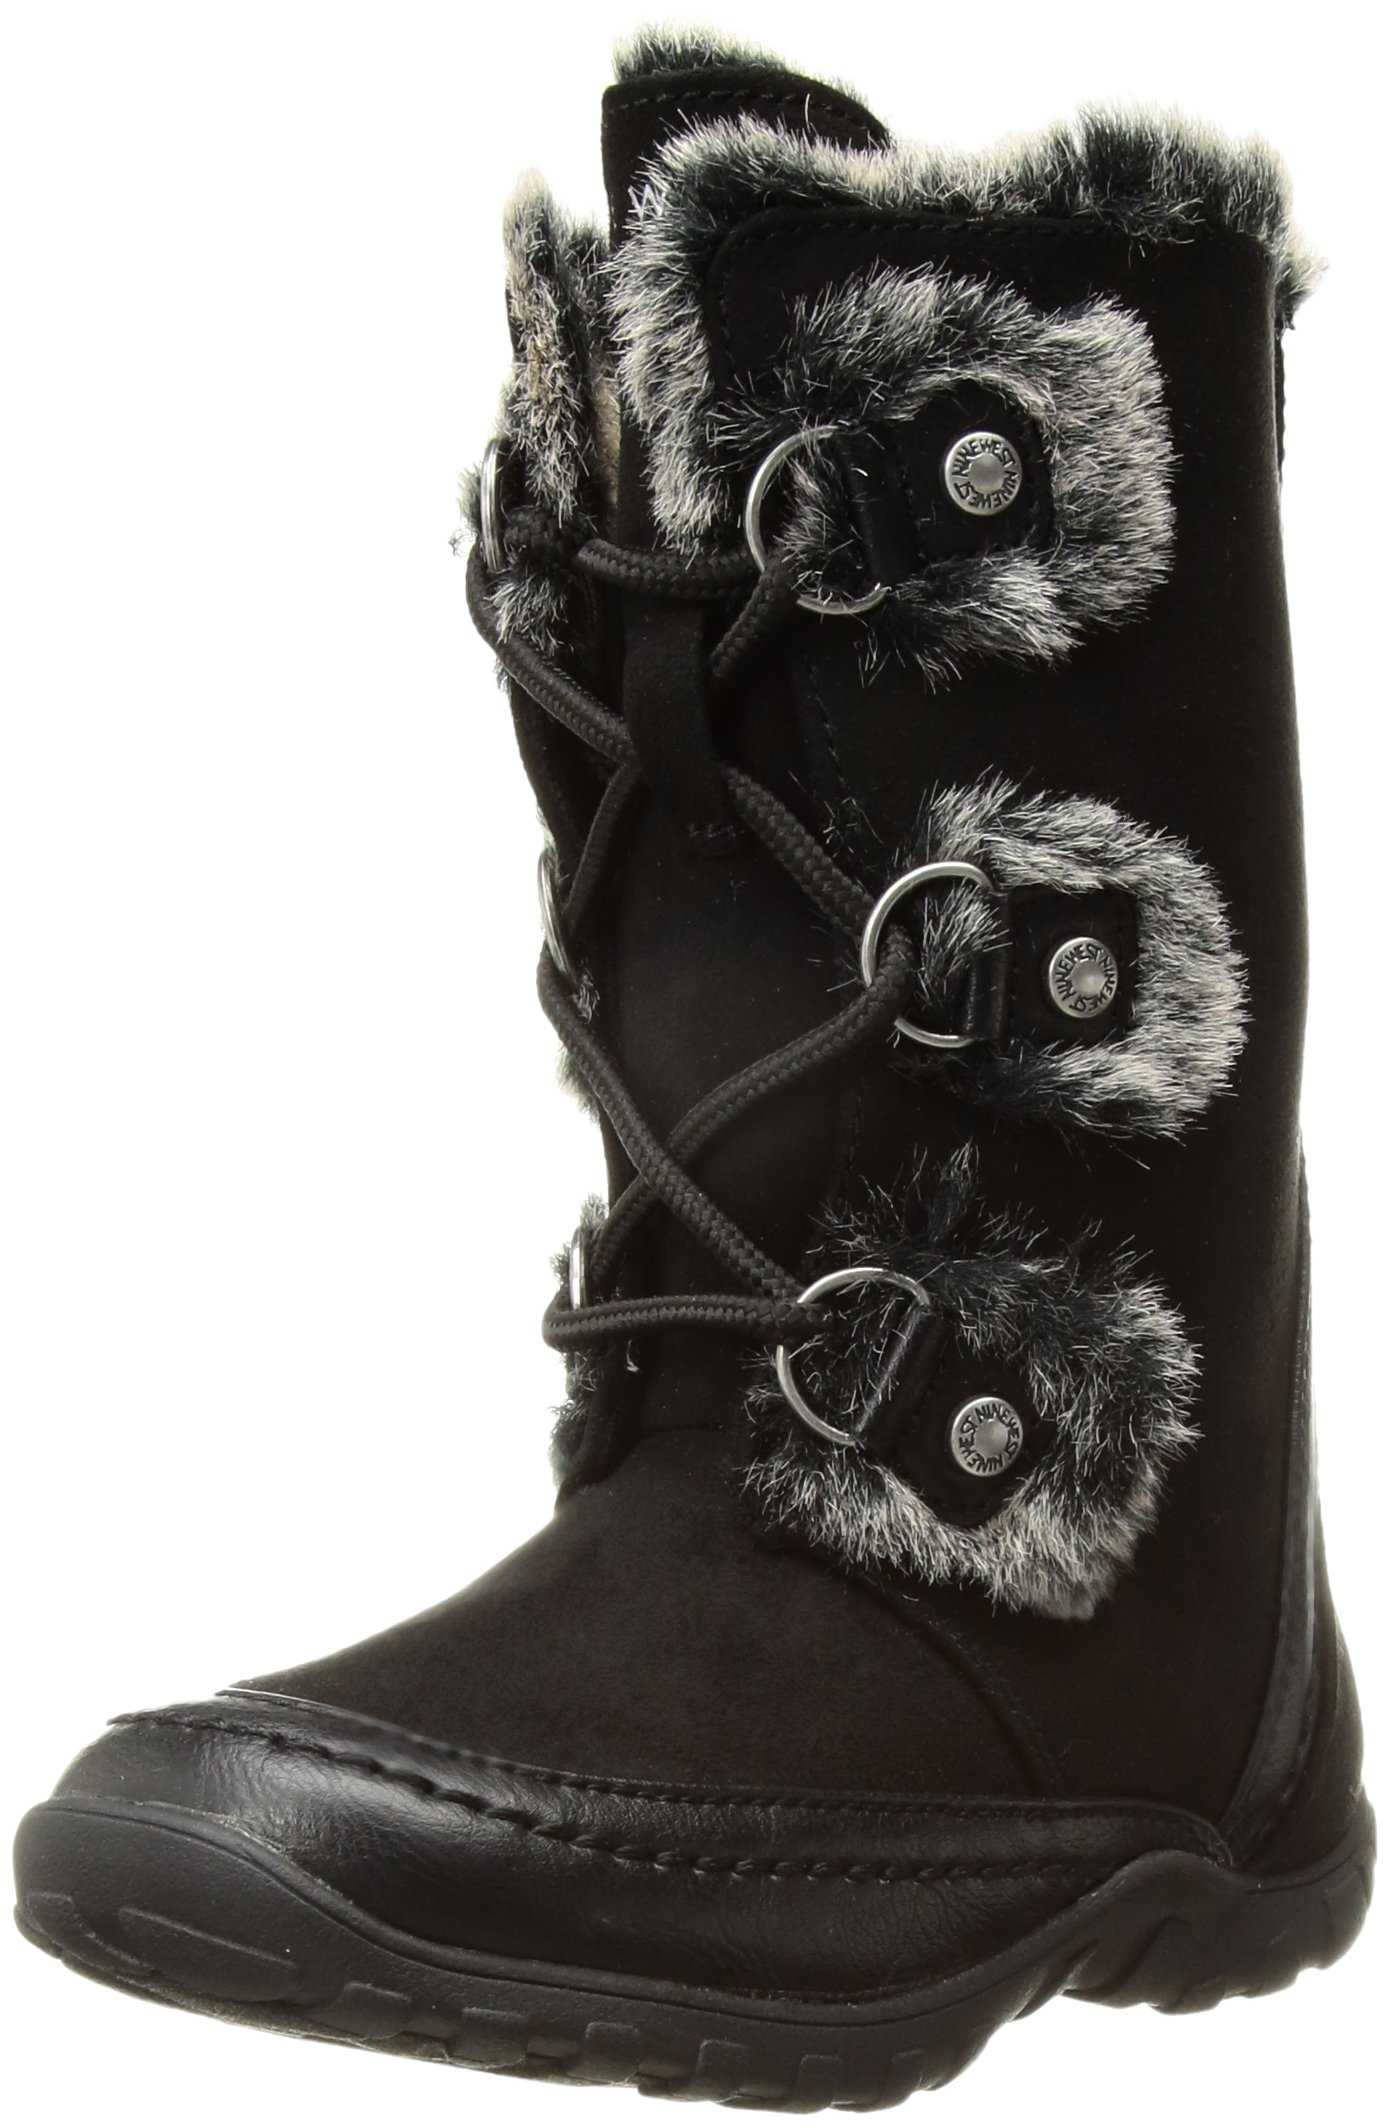 Nine West Girls' Daffodil 2 Fashion Boot, Black Microfiber, 10 Medium US Toddler